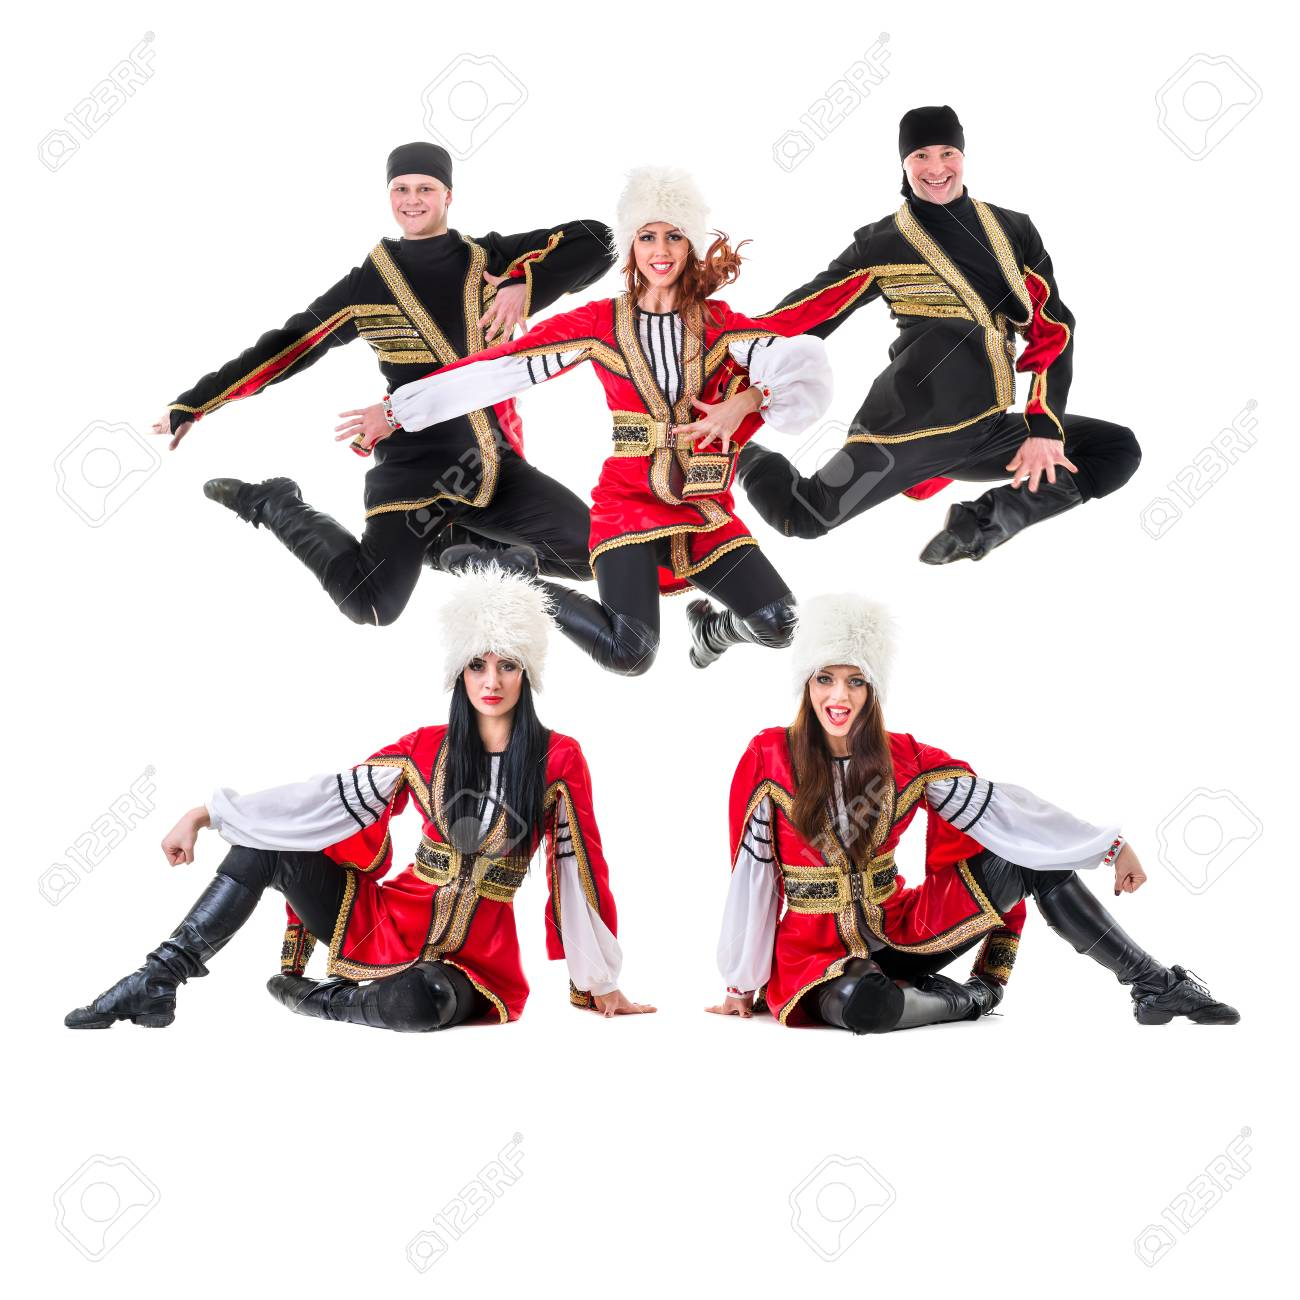 a001a9e6c Dancer team wearing a folk Caucasian highlander costumes dancing. Isolated  on white background in full